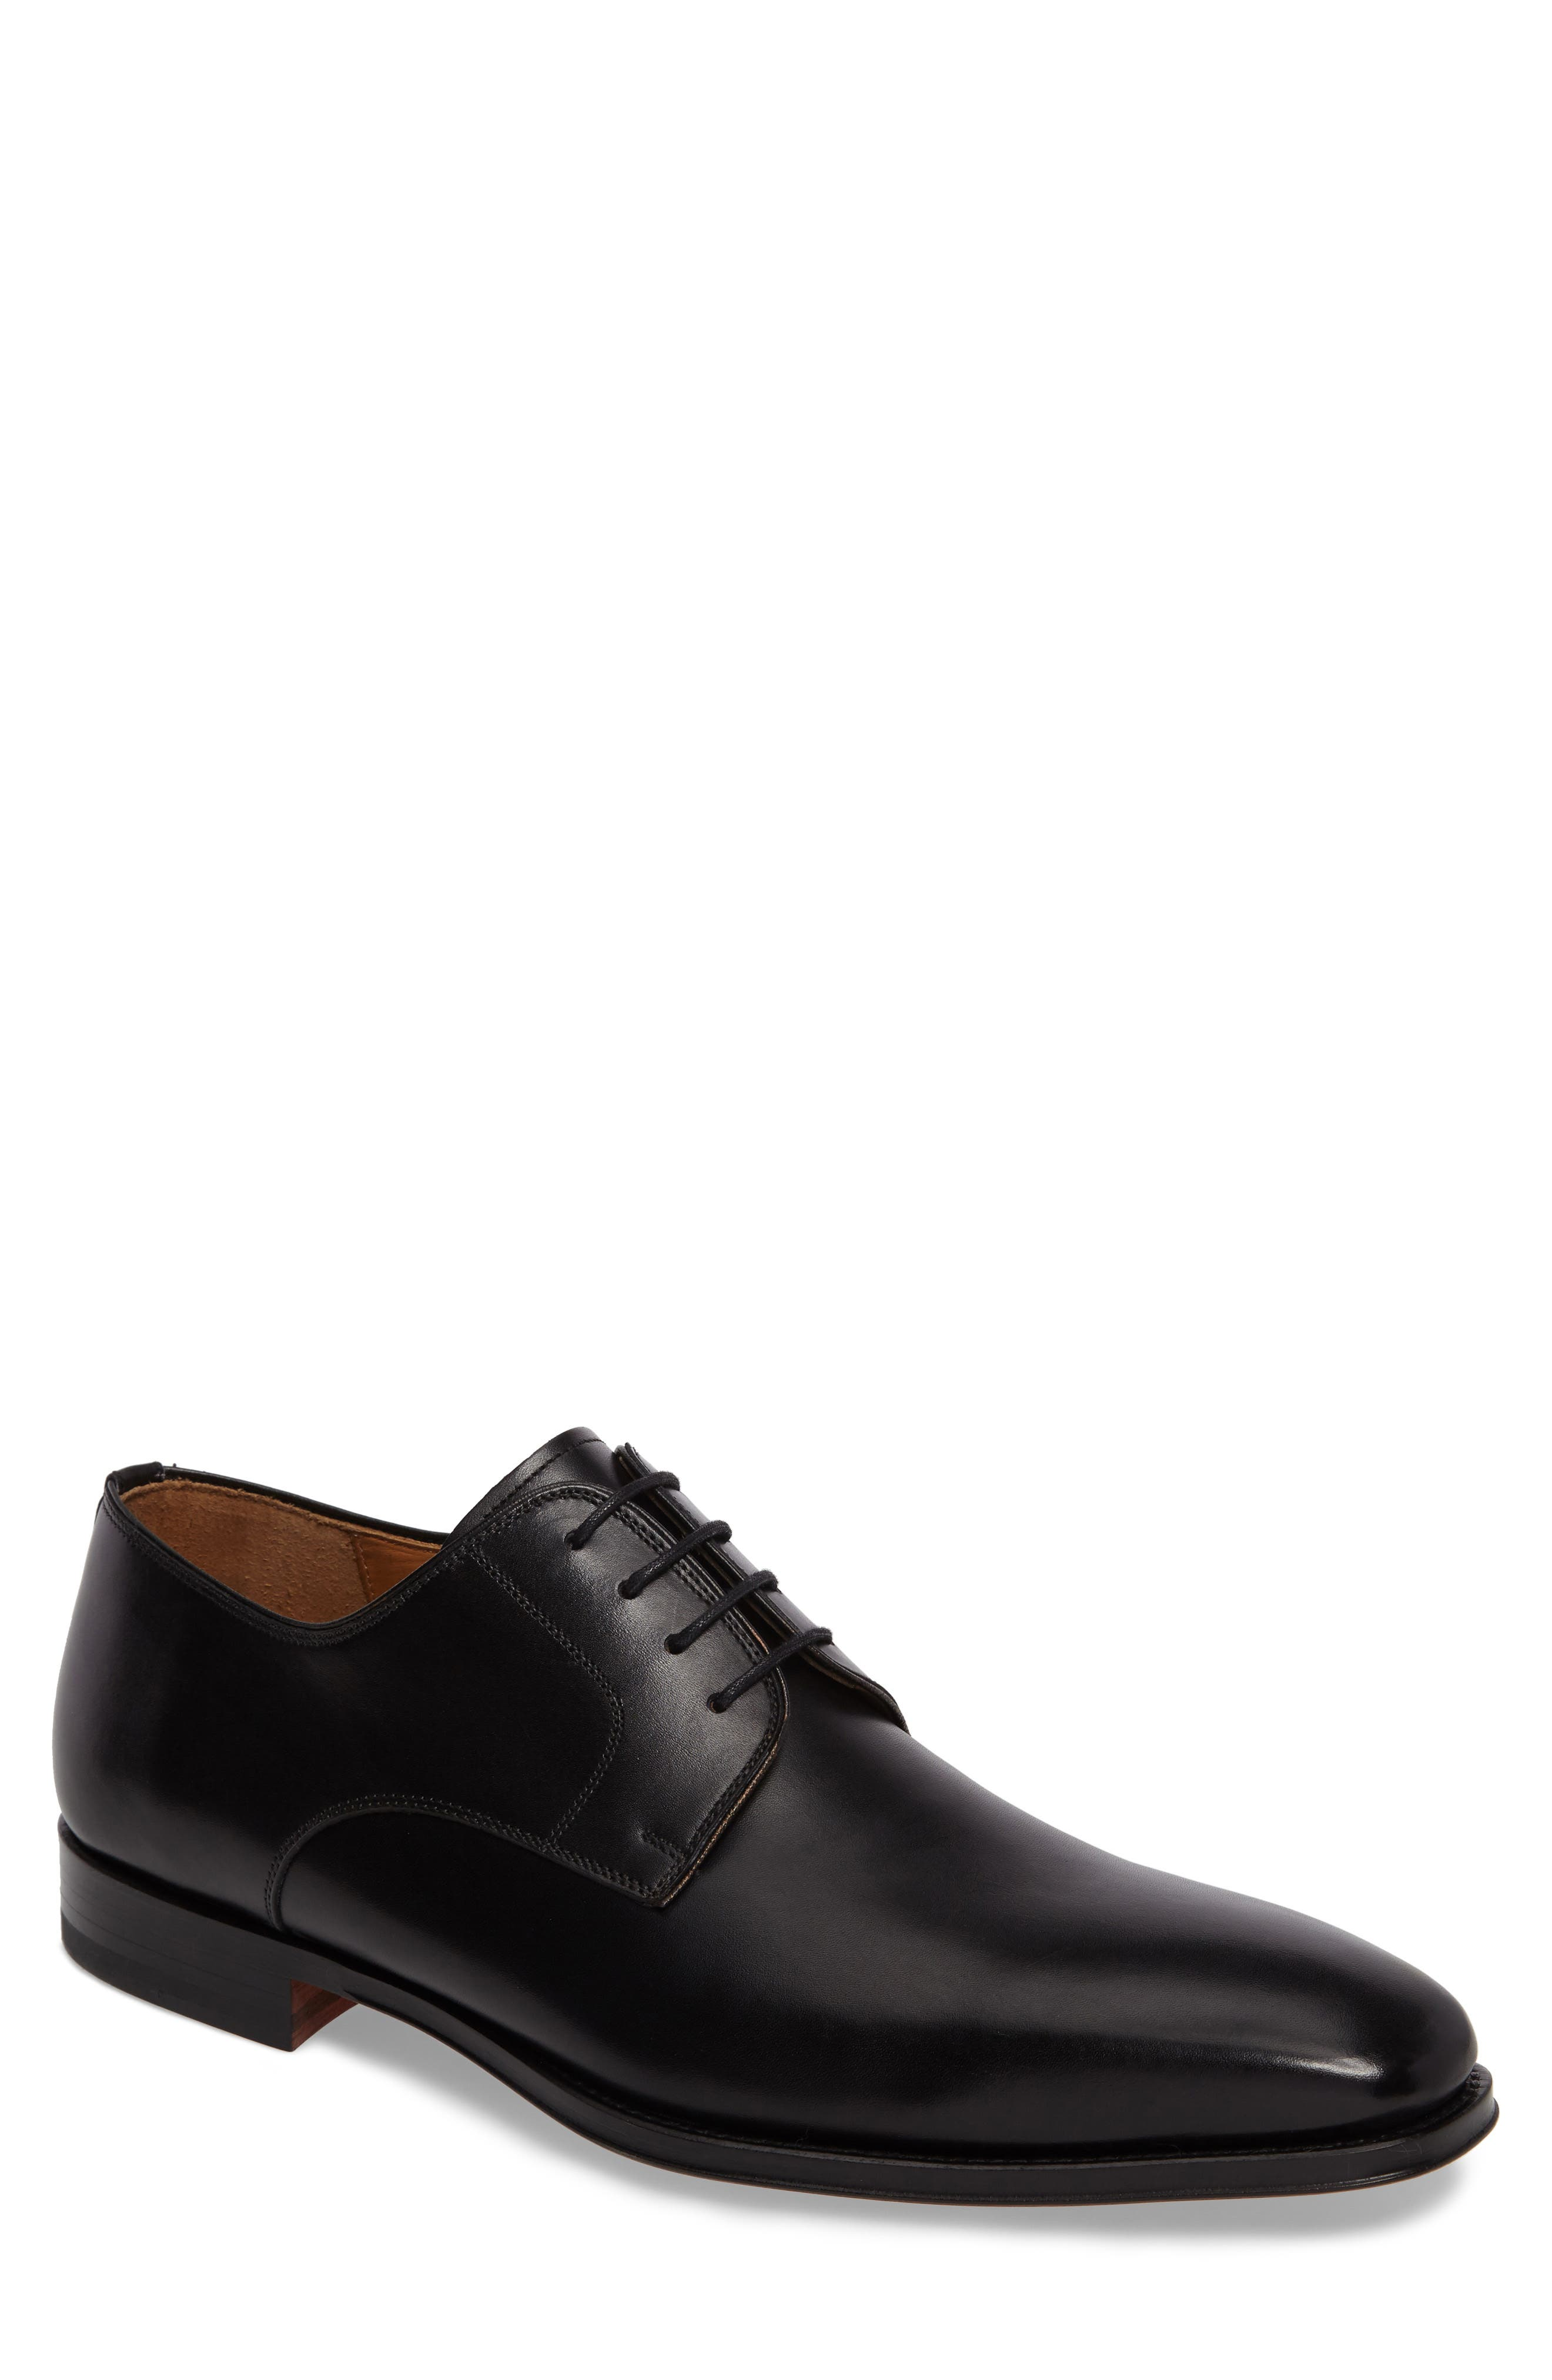 Main Image - Magnanni 'Colo' Plain Toe Derby (Men)